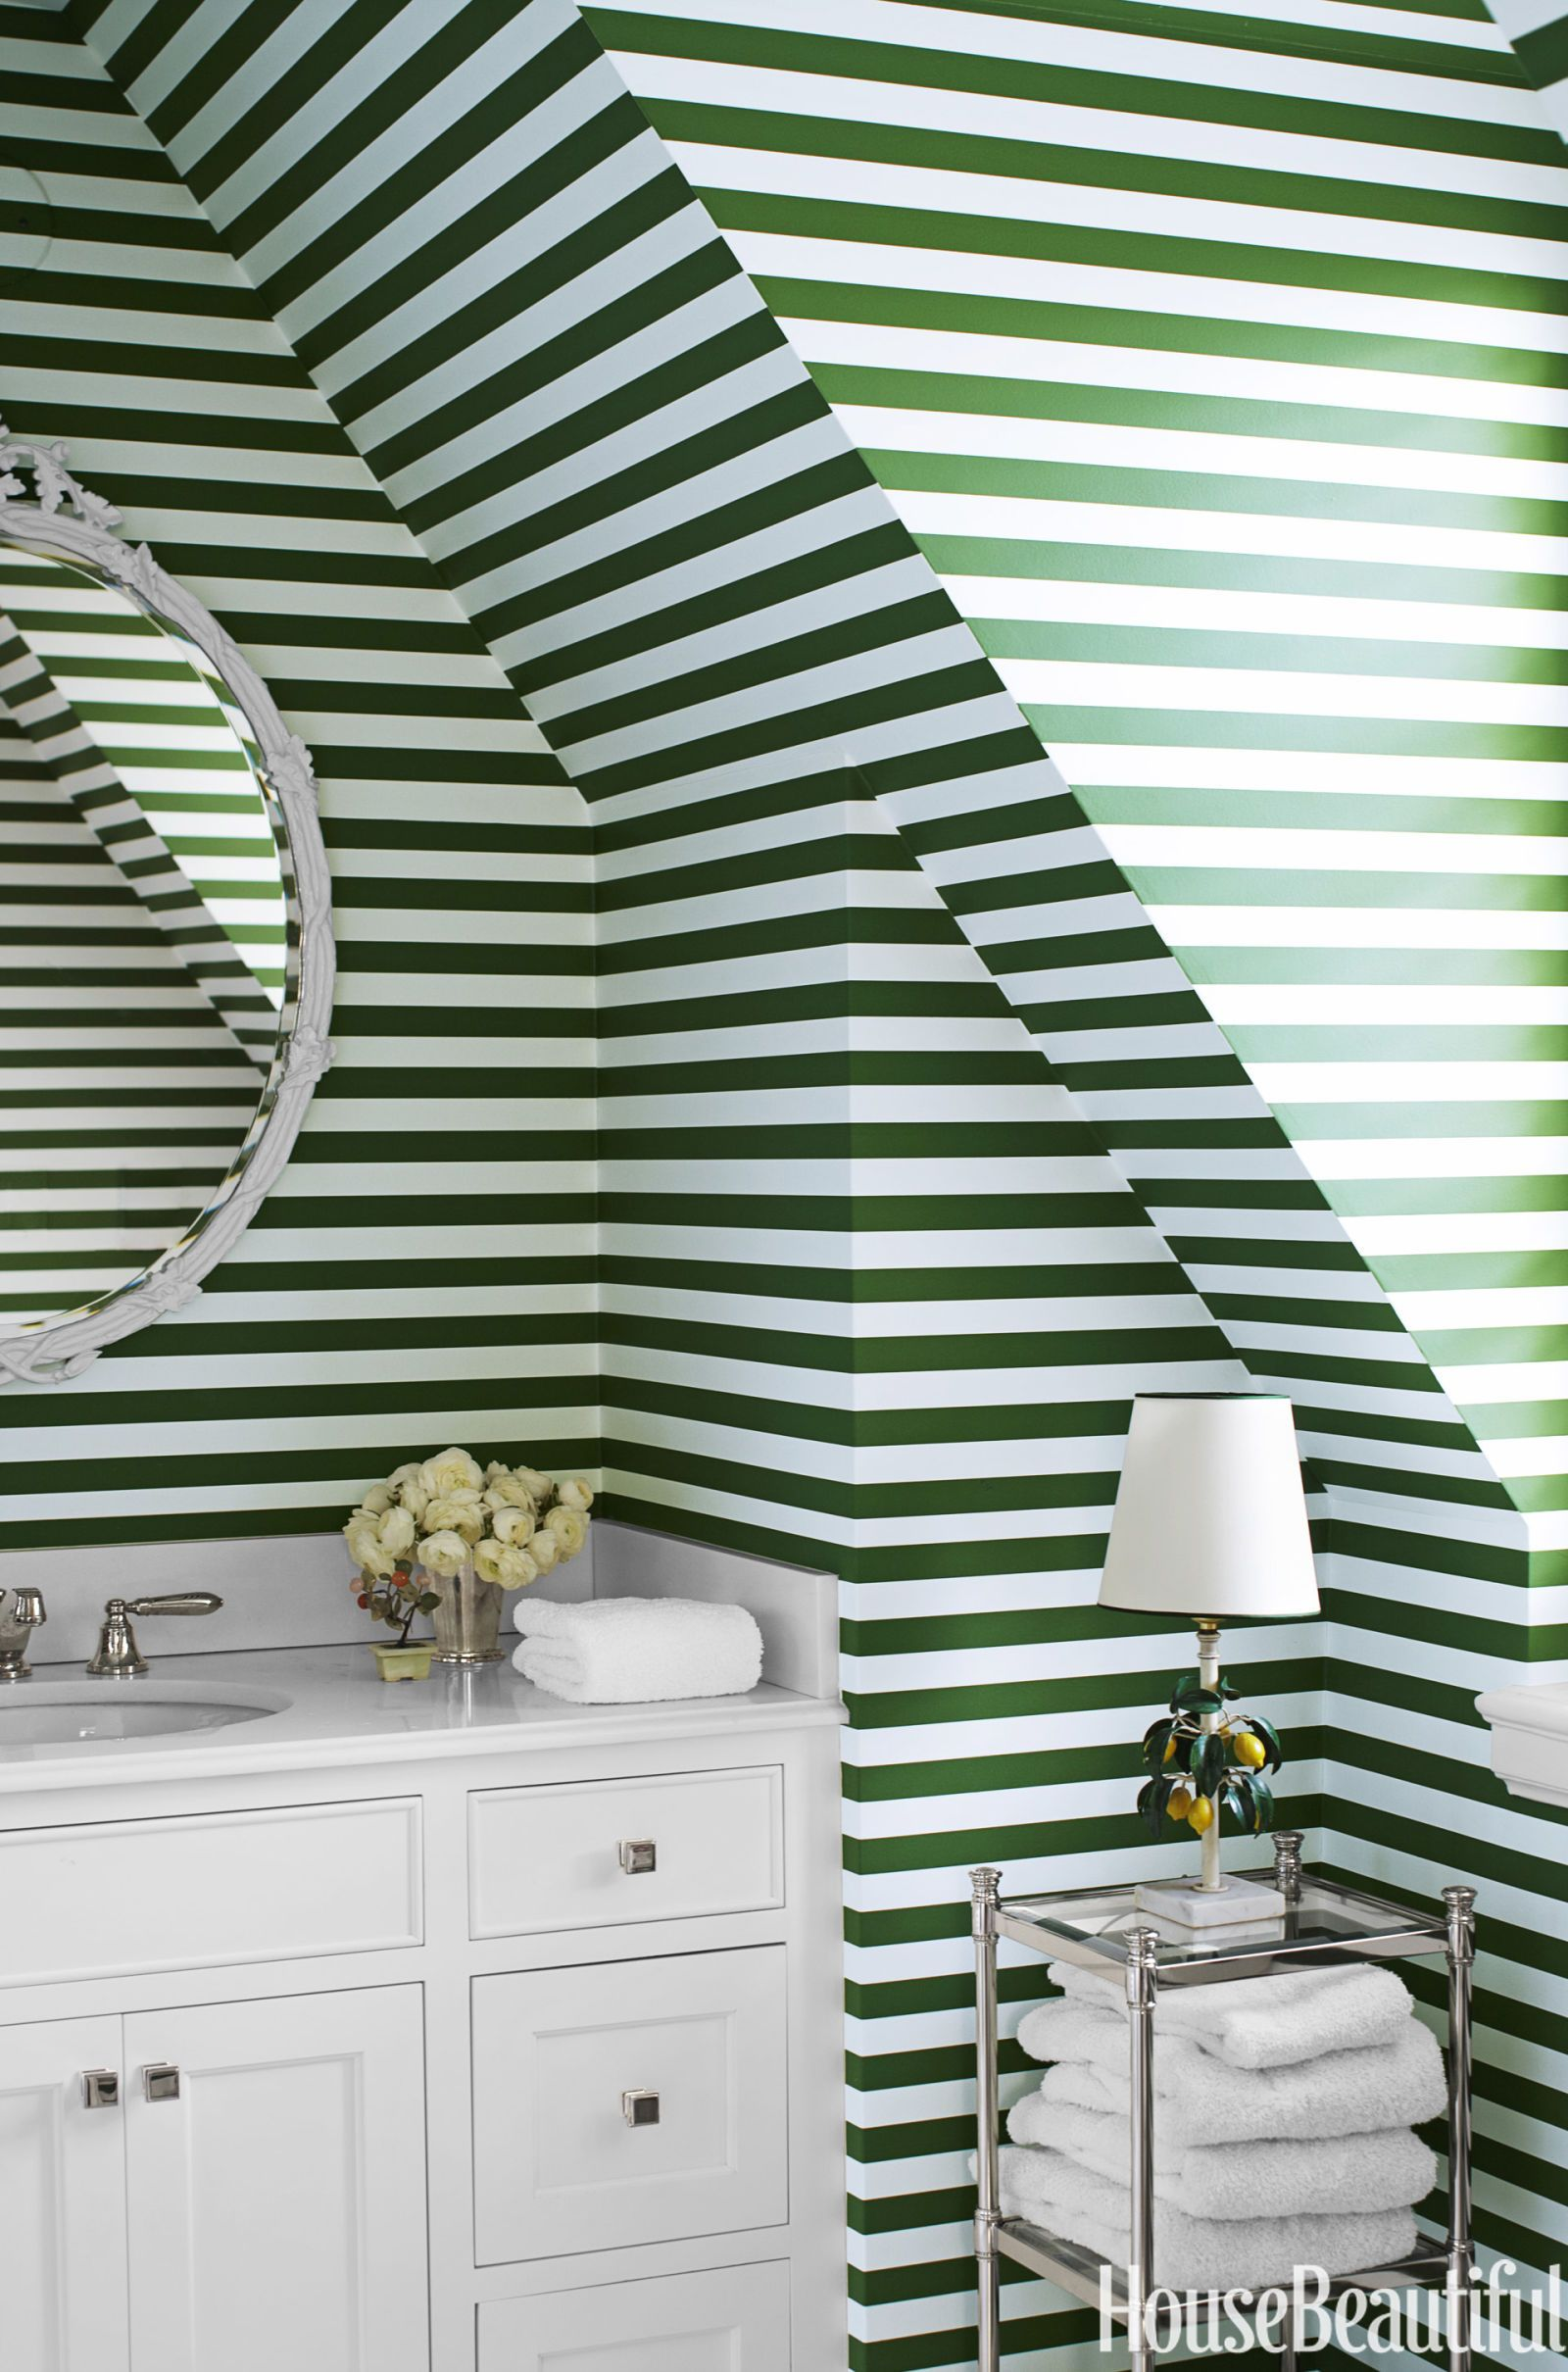 18 Bathrooms Paint Colors Thatu0027ll Make You So Happy